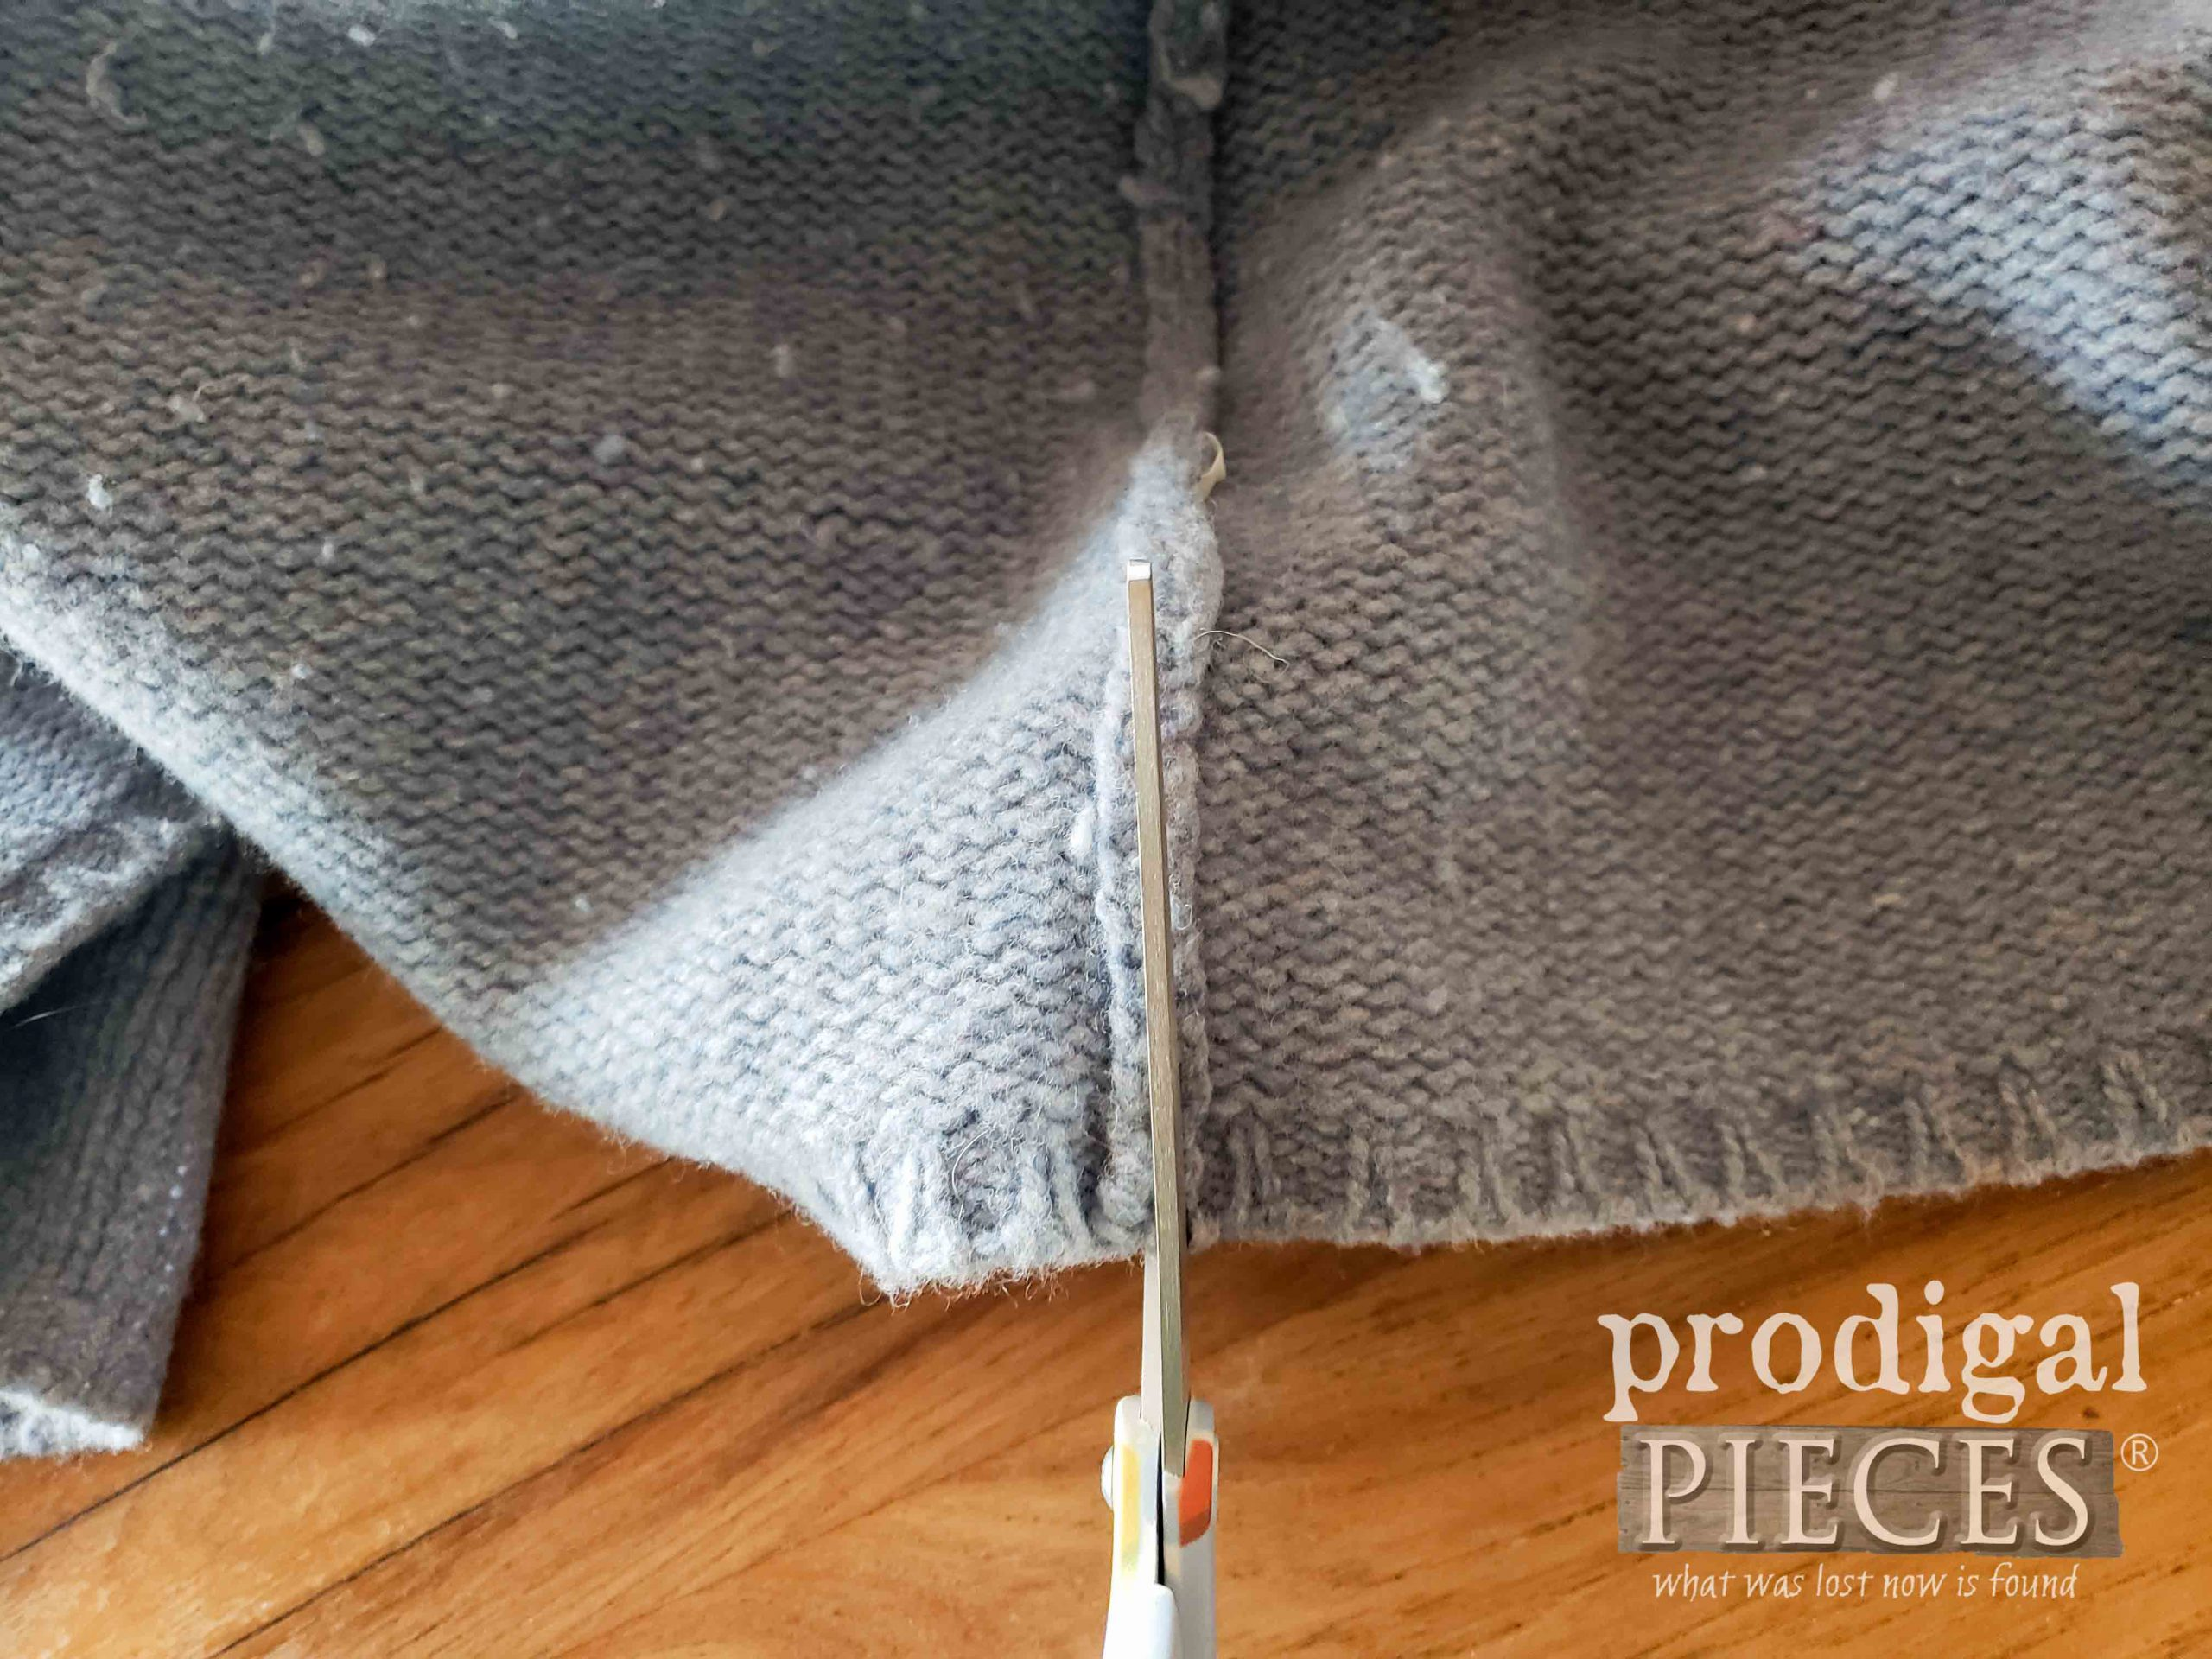 Cutting Wool Sweater for Upcycling in to Dryer Balls | prodigalpieces.com